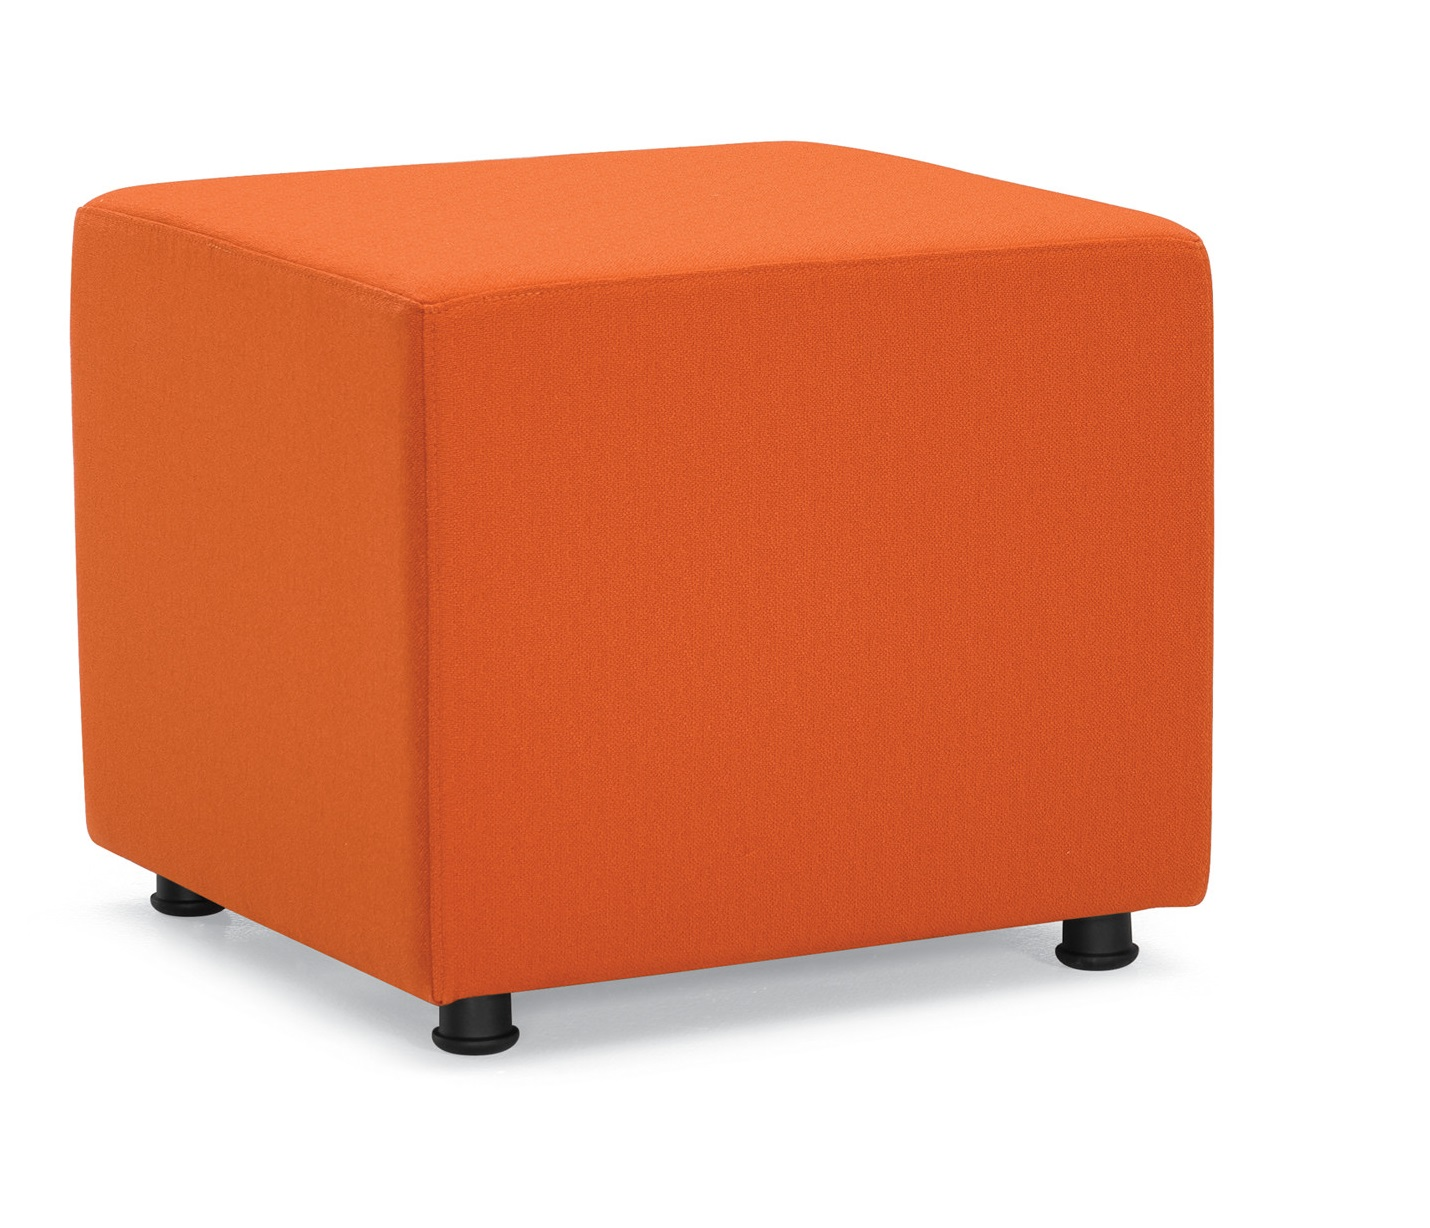 Offices To Go Square Modular Ottoman OTG13012